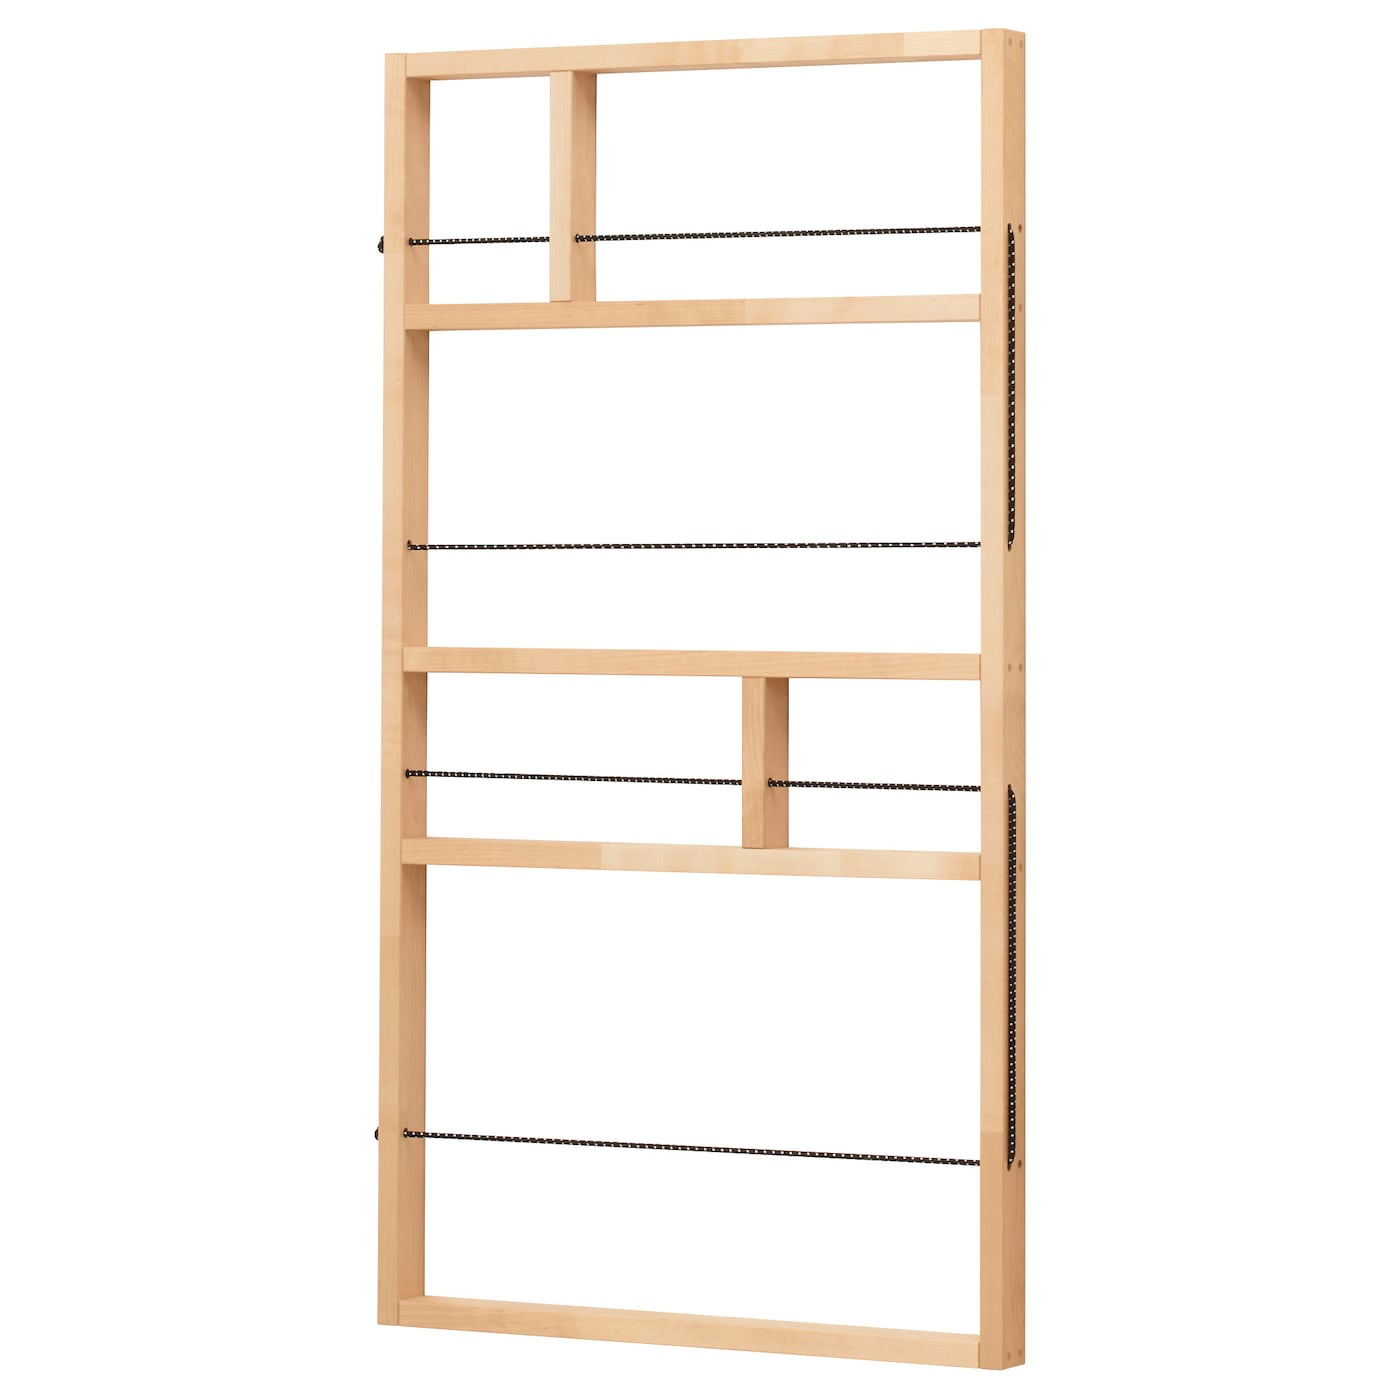 Ypperlig wall shelf birch 54x100 cm ikea for Etagere murale de cuisine ikea